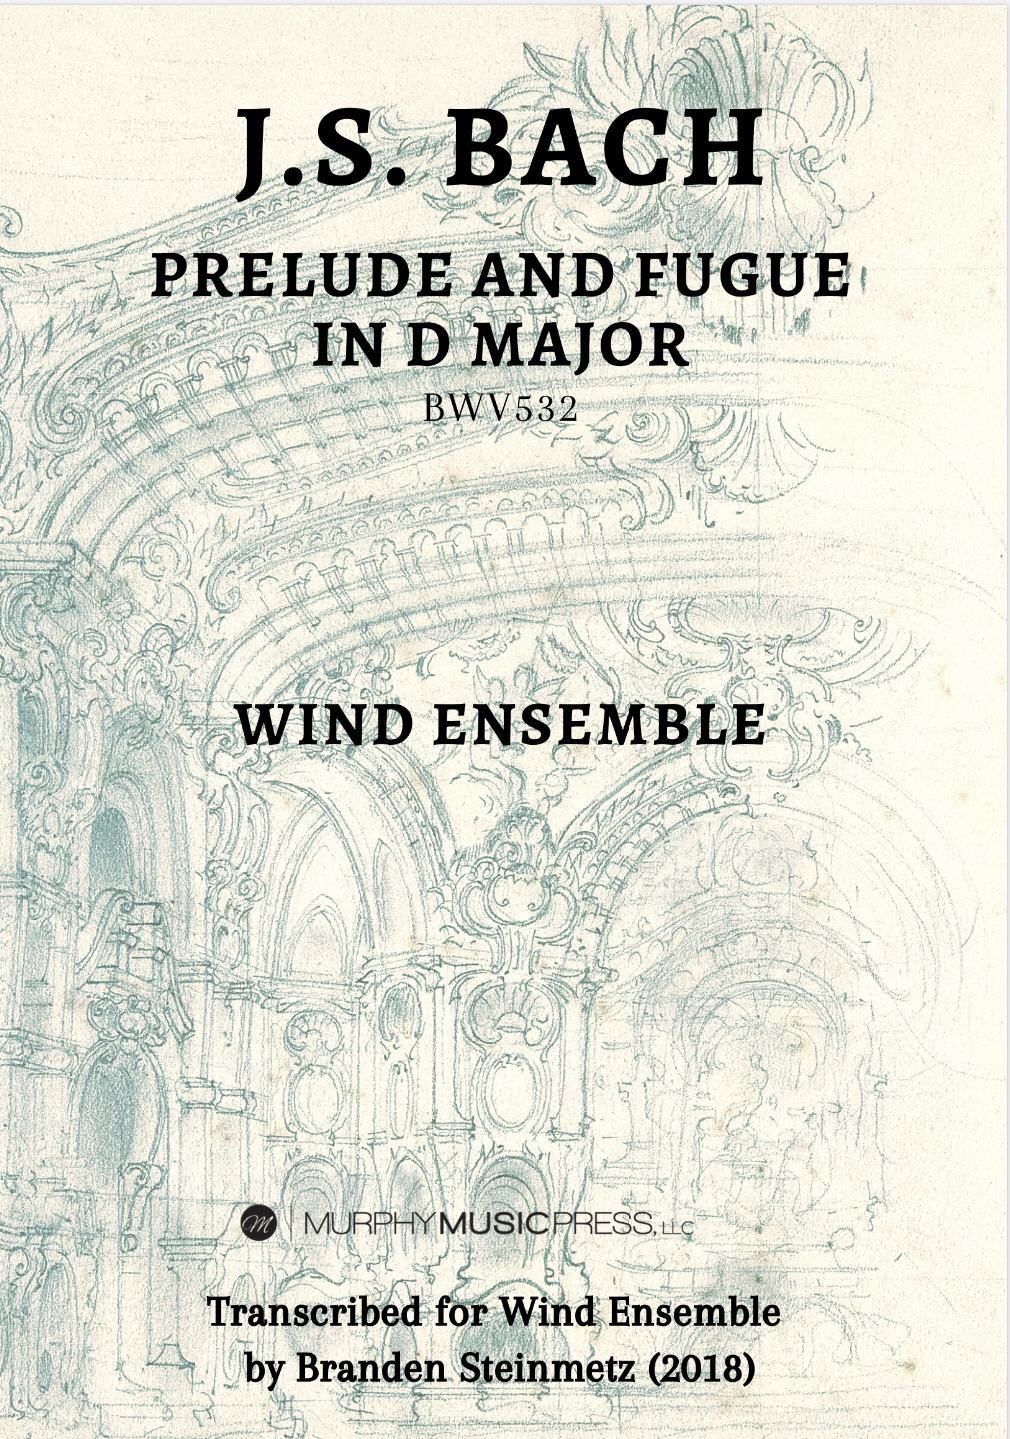 Prelude And Fugue In D Major, BWV 532 by Bach, arr. Steinmetz